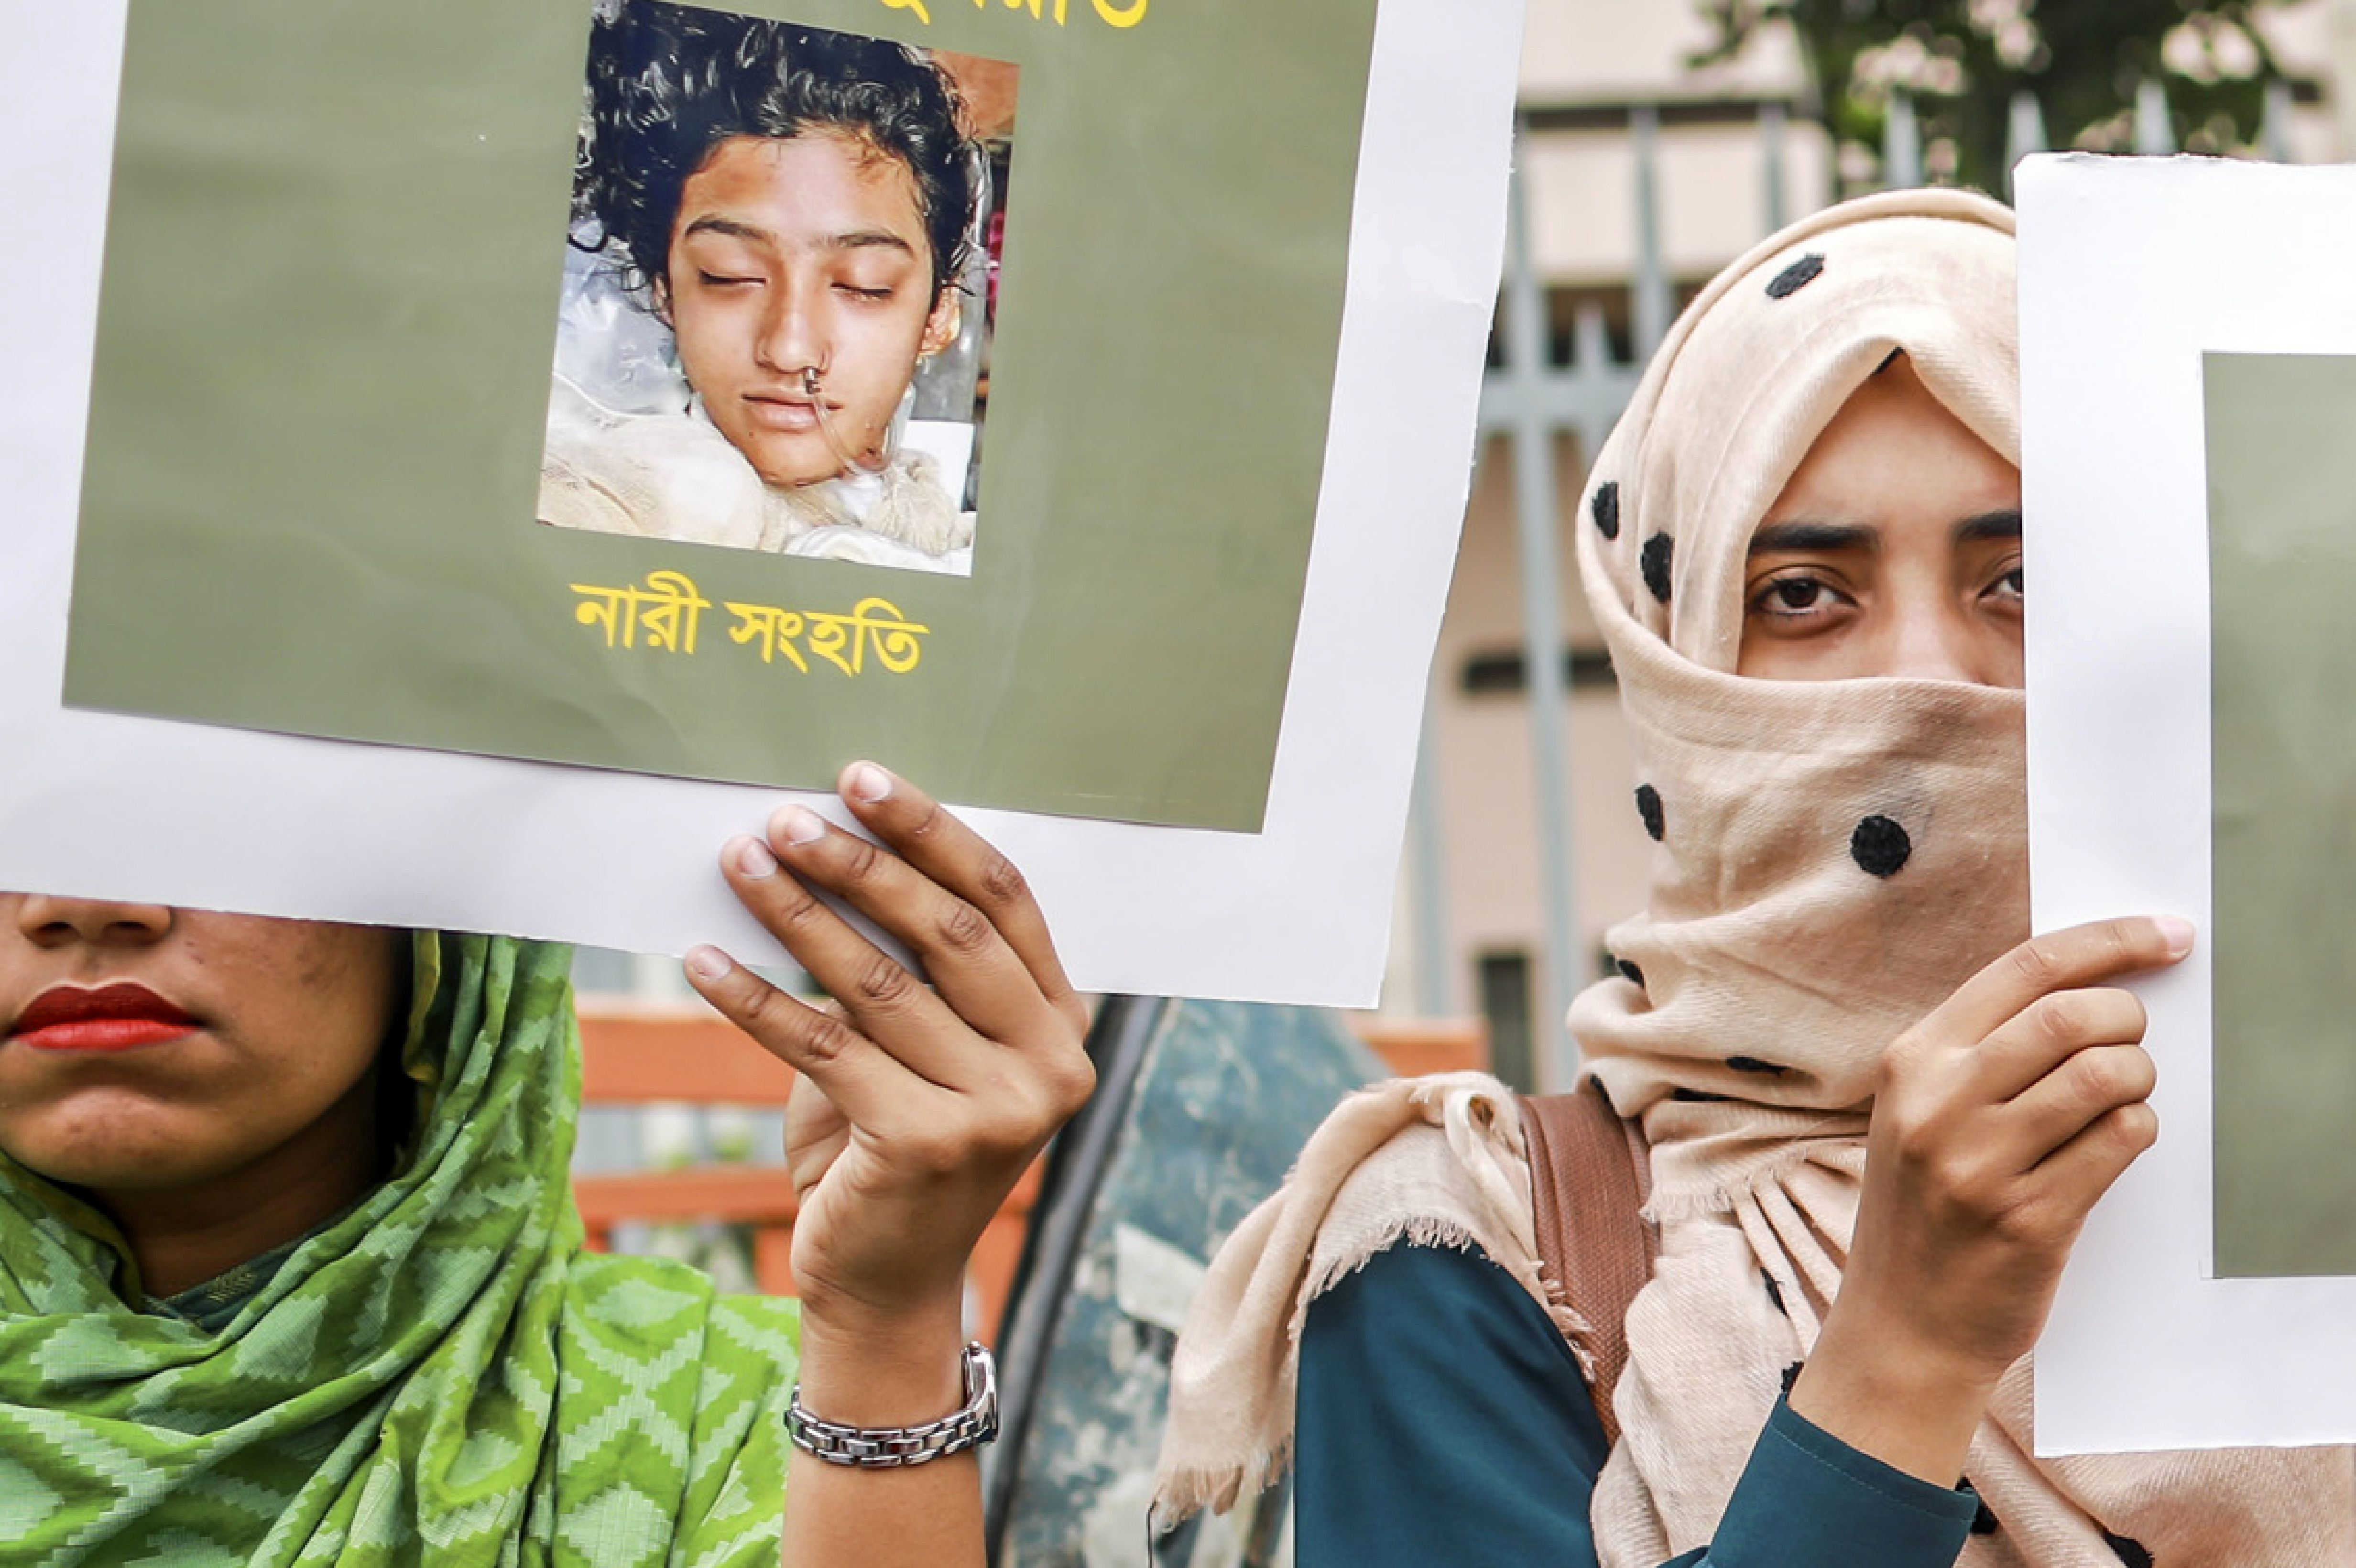 In this photo taken on April 12, 2019, Bangladeshi women hold placards and photographs of Nusrat Jahan Rafi at a protest in D